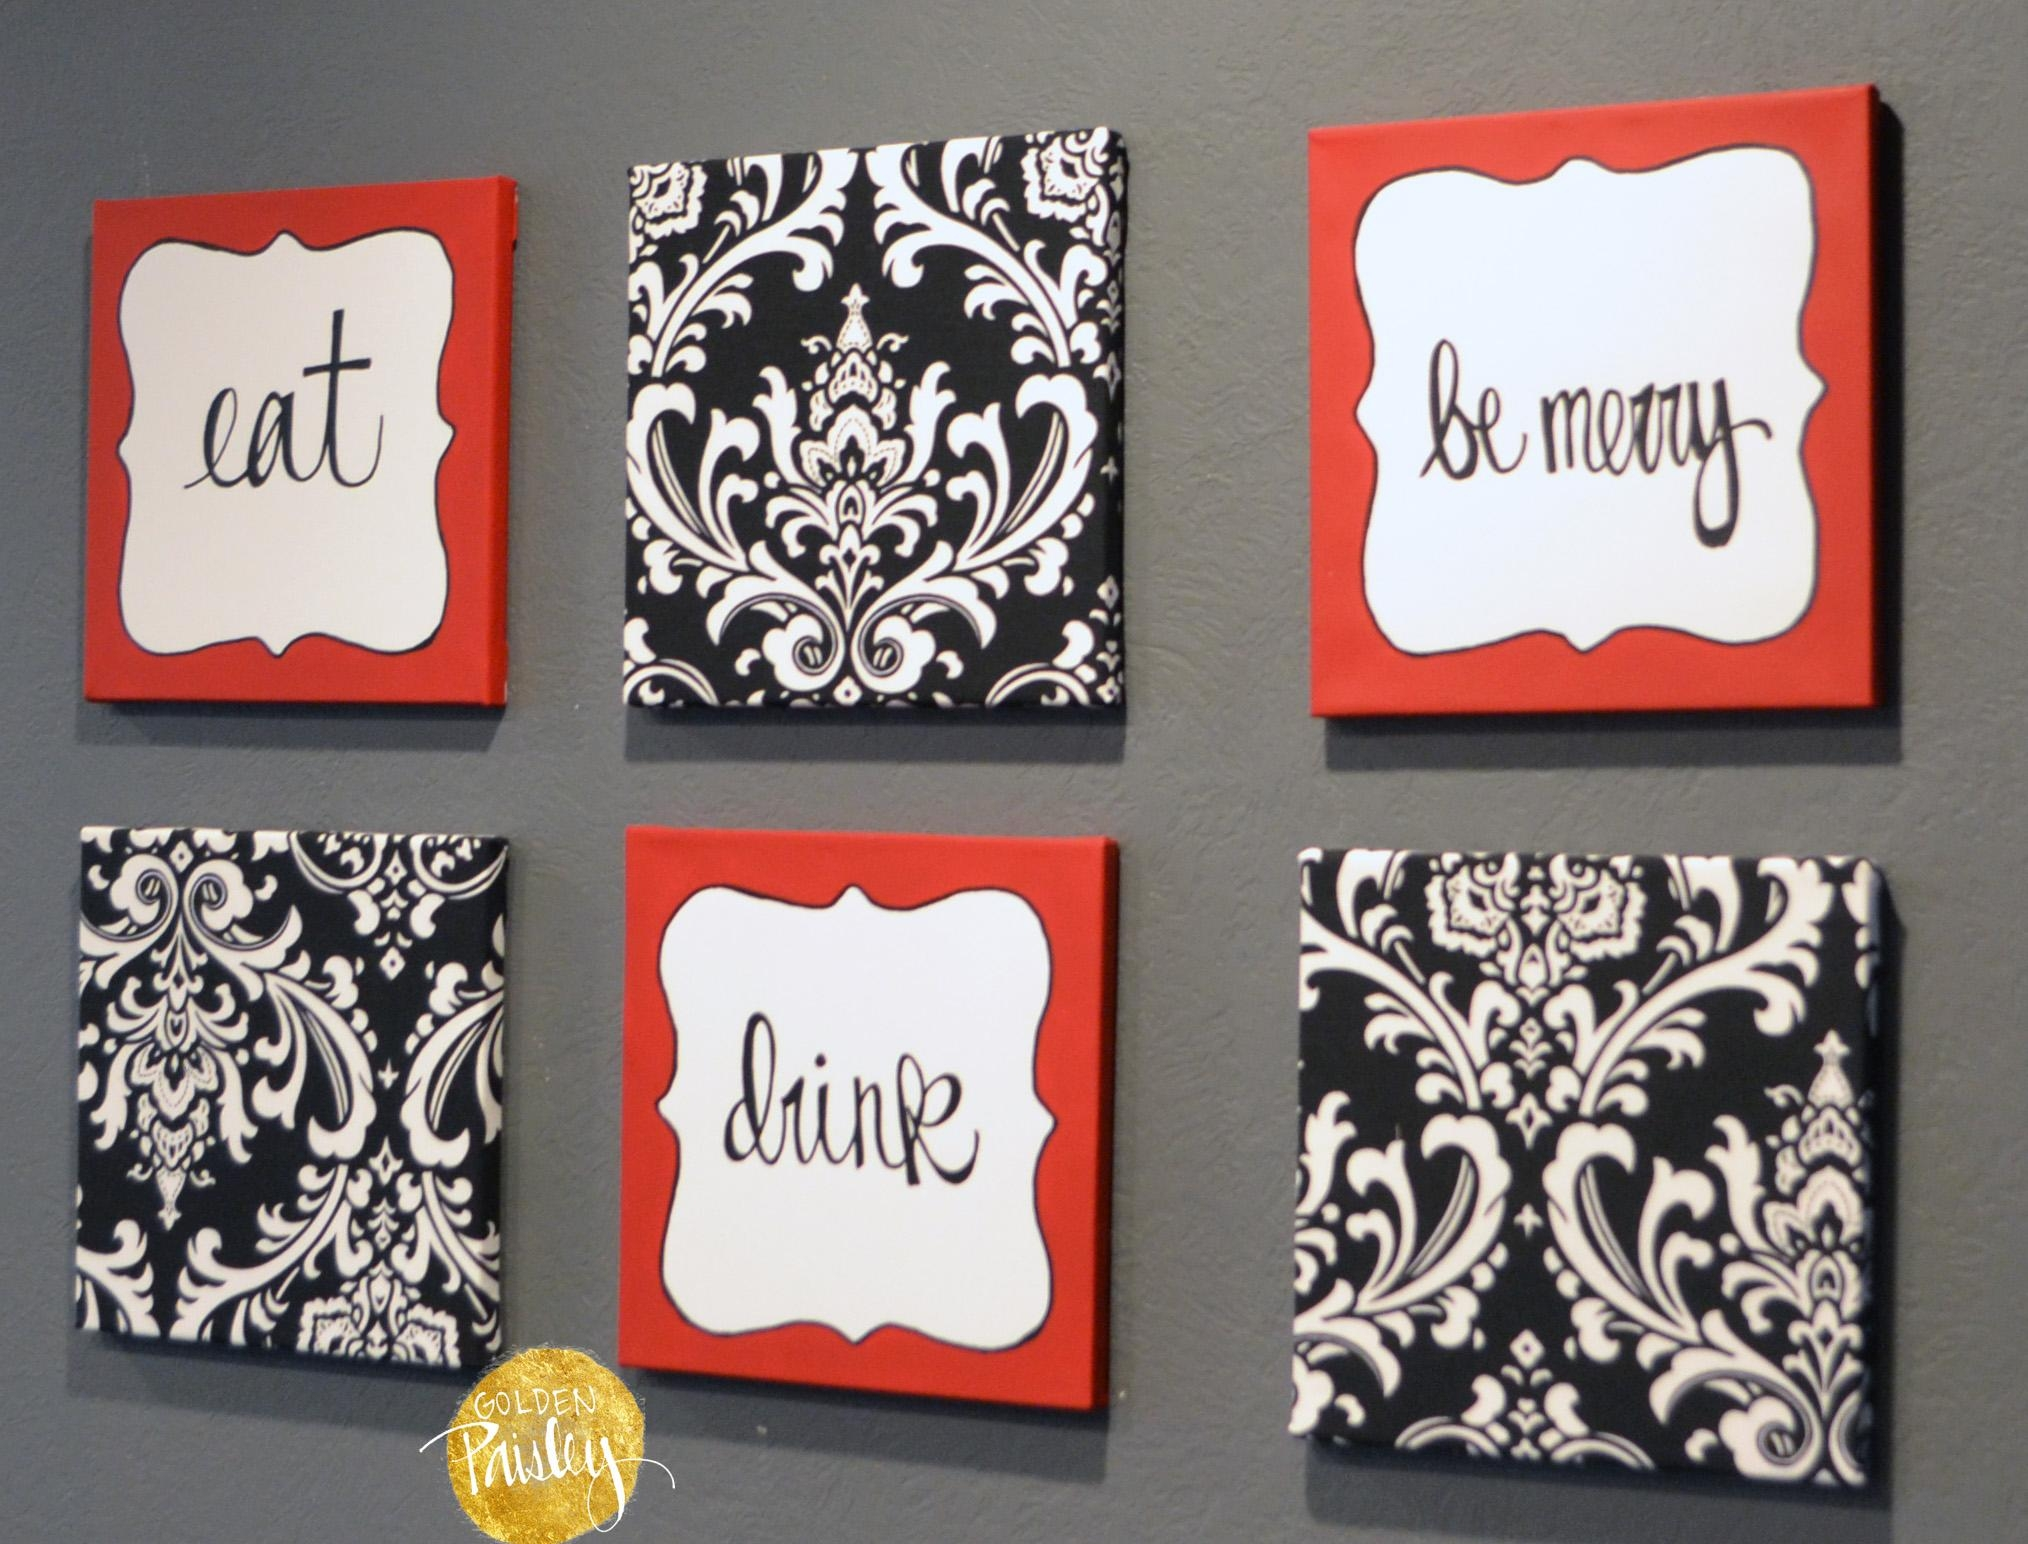 """Red And Black Damask Eat Drink Be Merry """"Chef"""" Wall Decor Set Intended For Black And White Damask Wall Art (View 2 of 20)"""